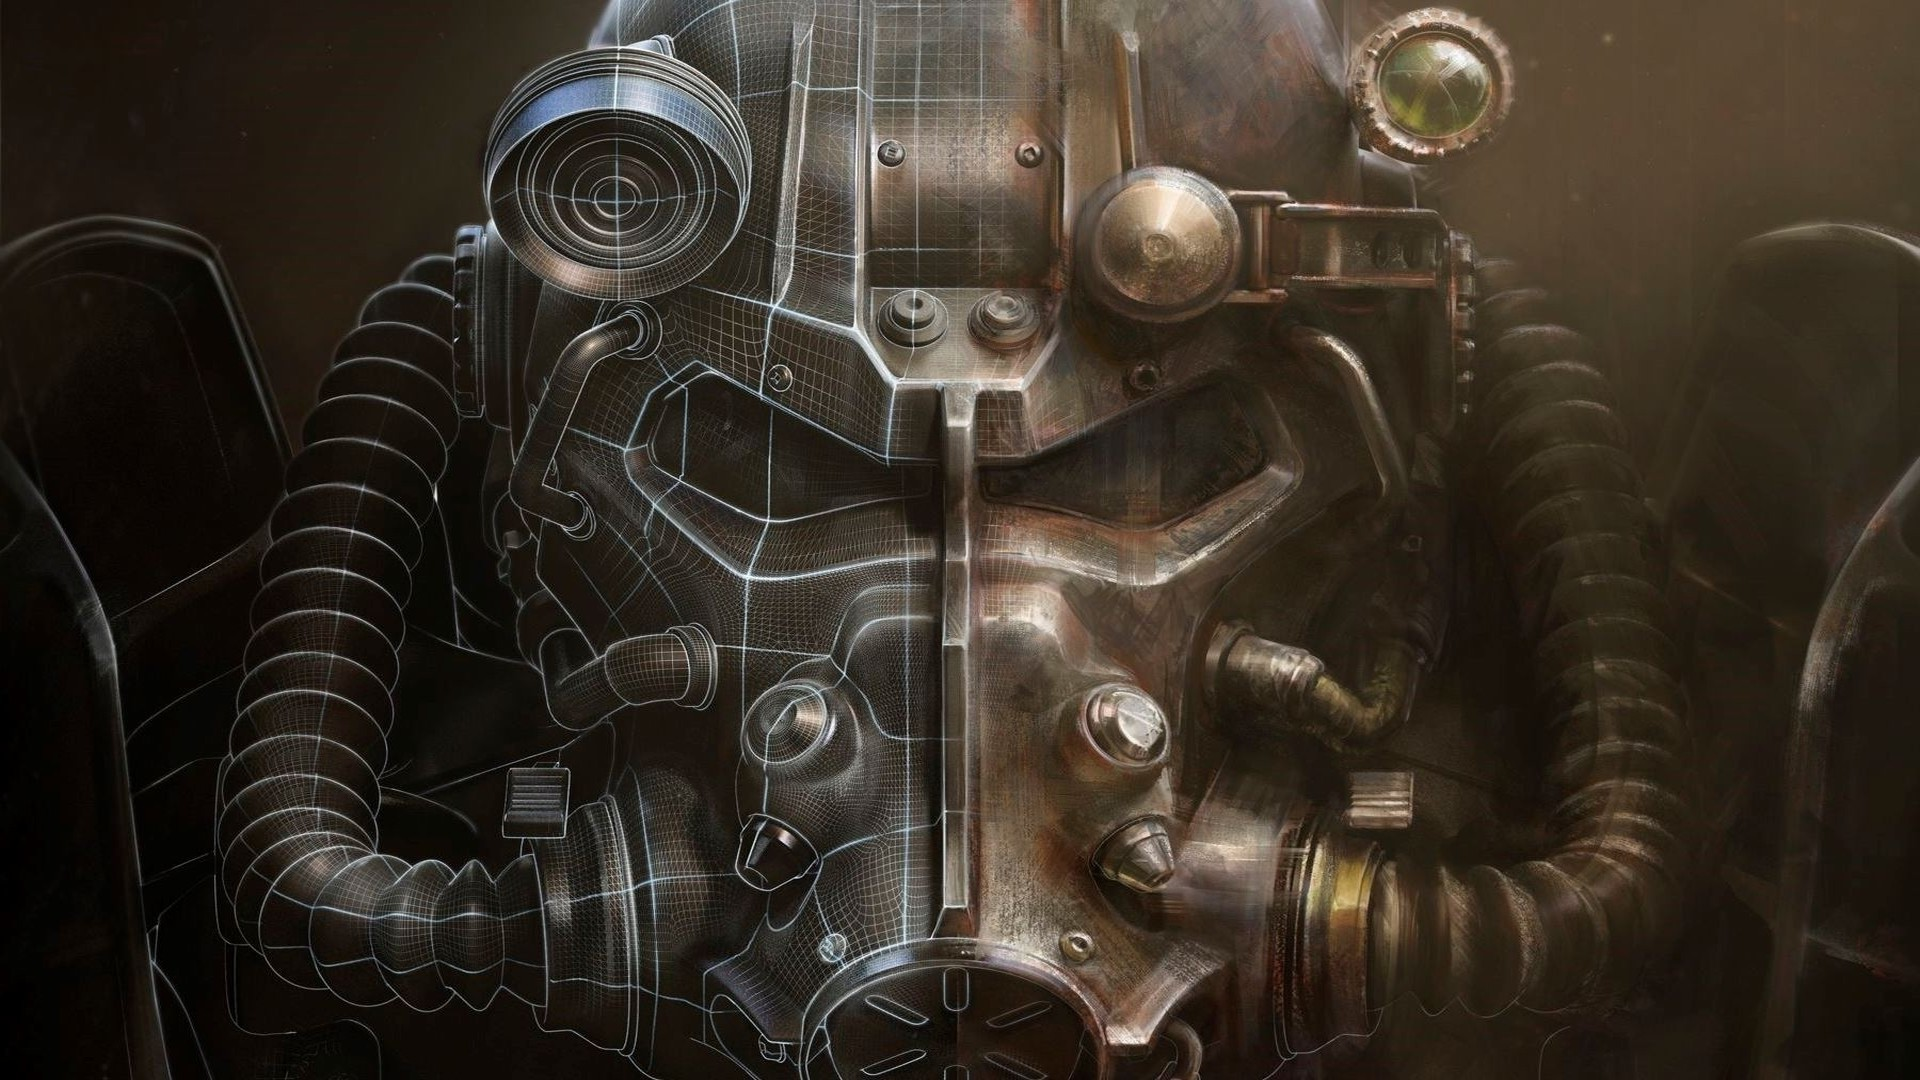 Fallout 4, Helmet, Artwork, Bethesda Softworks, Video Games, Fallout, Power  Armor Wallpapers HD / Desktop and Mobile Backgrounds